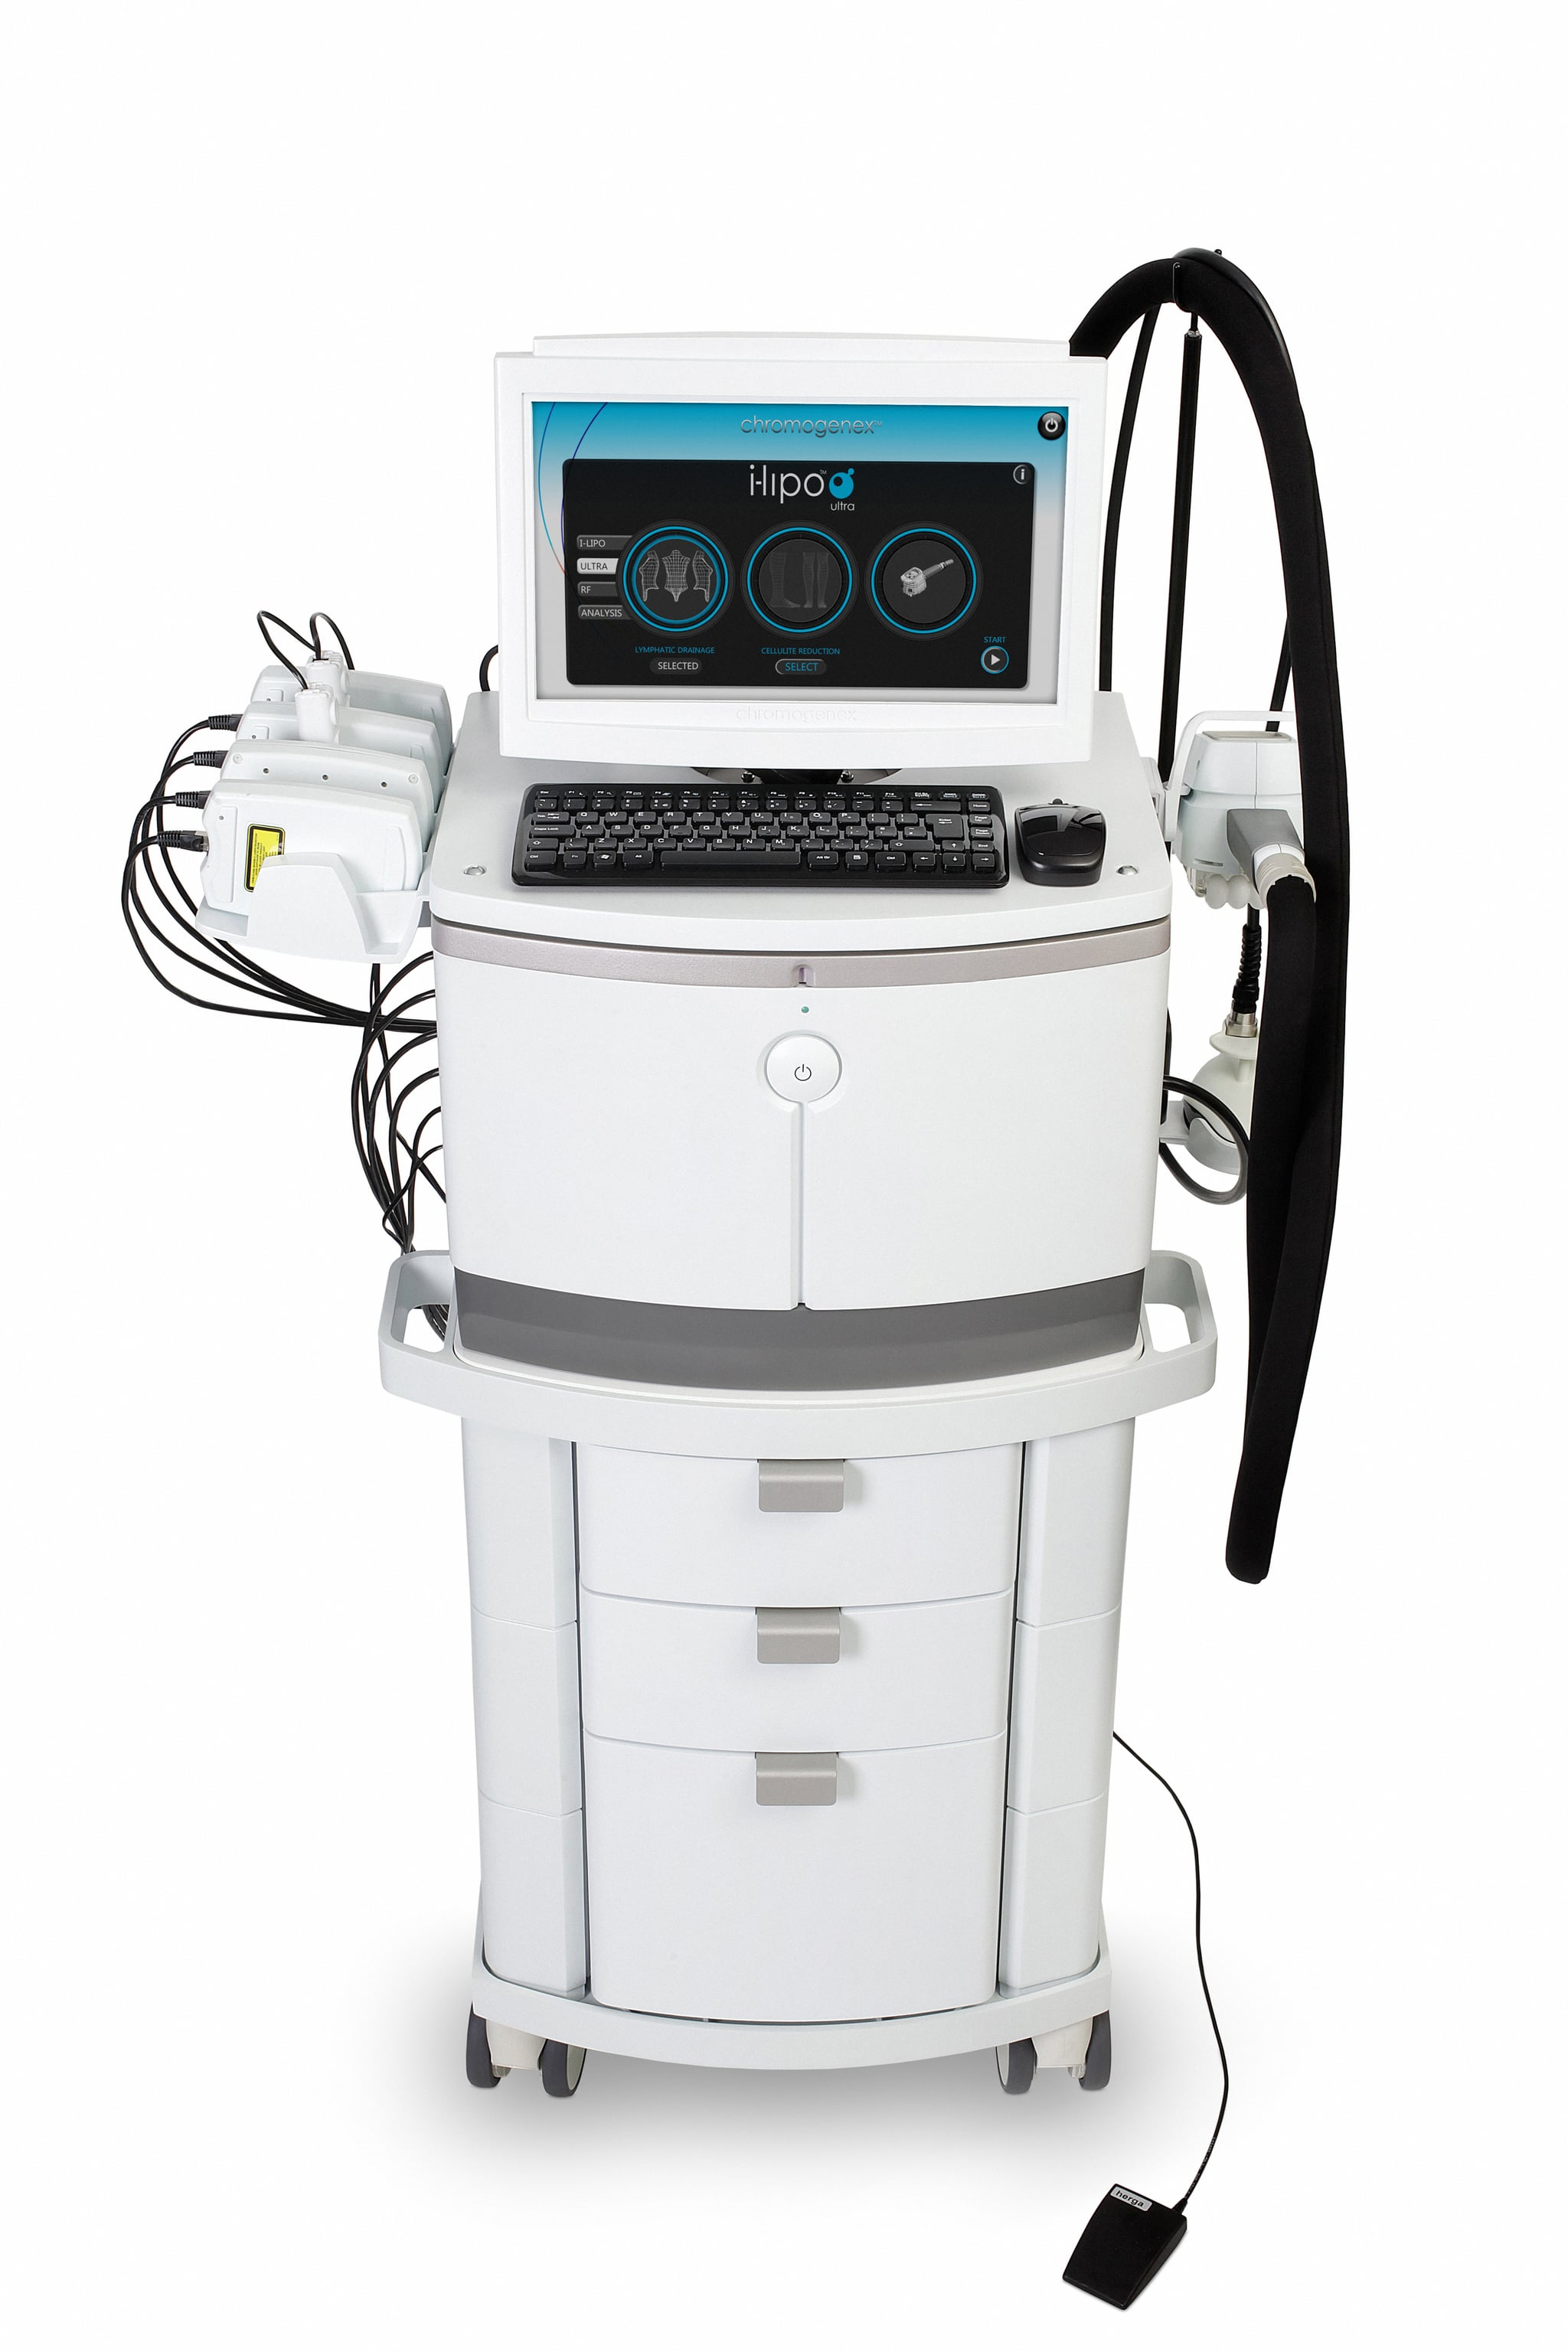 """How Does It Work? i-Lipoxcell uses laser technology to zero in on fat. A dual wavelength of red light penetrates the fat cells in a targeted area and pops them open, which allows the fatty acid contents to leak out like air escaping from a balloon. This technique causes the same physiological response of a fat cell that occurs when you diet and exercise, except instead of running, lifting weights, or climbing stairs to burst open your fat cells and deflate them, i-Lipoxcell uses its signature red light. """"That means this process is completely natural and is something your body expects to happen, which is why this works so well,"""" explains Dr. Heskett. """"We're working with the natural functions of the body."""" The result is fat loss that can range anywhere from a quarter of an inch up to three inches in one 20 minute session, depending on how much fat you have to lose. """"Still, heavier people don't necessarily do better than thinner people,"""" Dr. Heskett assures. """"There are visible results on patients of every size.""""  The reason for such successful results? Although you're burning just 300 calories (about the equivalent of a bagel and cream cheese) in one appointment, which you could achieve in a single workout session without a problem, the difference is that the i-Lipoxcell laser burns those calories from a concentrated area as opposed to all over your body like with traditional exercise, which is why you're able to see results in that specific region immediately. """"The calories you're burning at the gym could be from your glycogen source, which would not be from your fat at all, but this is specifically targeting fat,"""" says Dr. Heskett. """"Every little fat cell balloon in that precise area is dumping its contents during the treatment and shrinking, which is how you lose the inches.""""   What Happens When You Go in For the Treatment? For starters, the i-Lipoxcell includes four laser paddles and two circulation probes. First, Dr. Heskett positioned the four paddles around the p"""